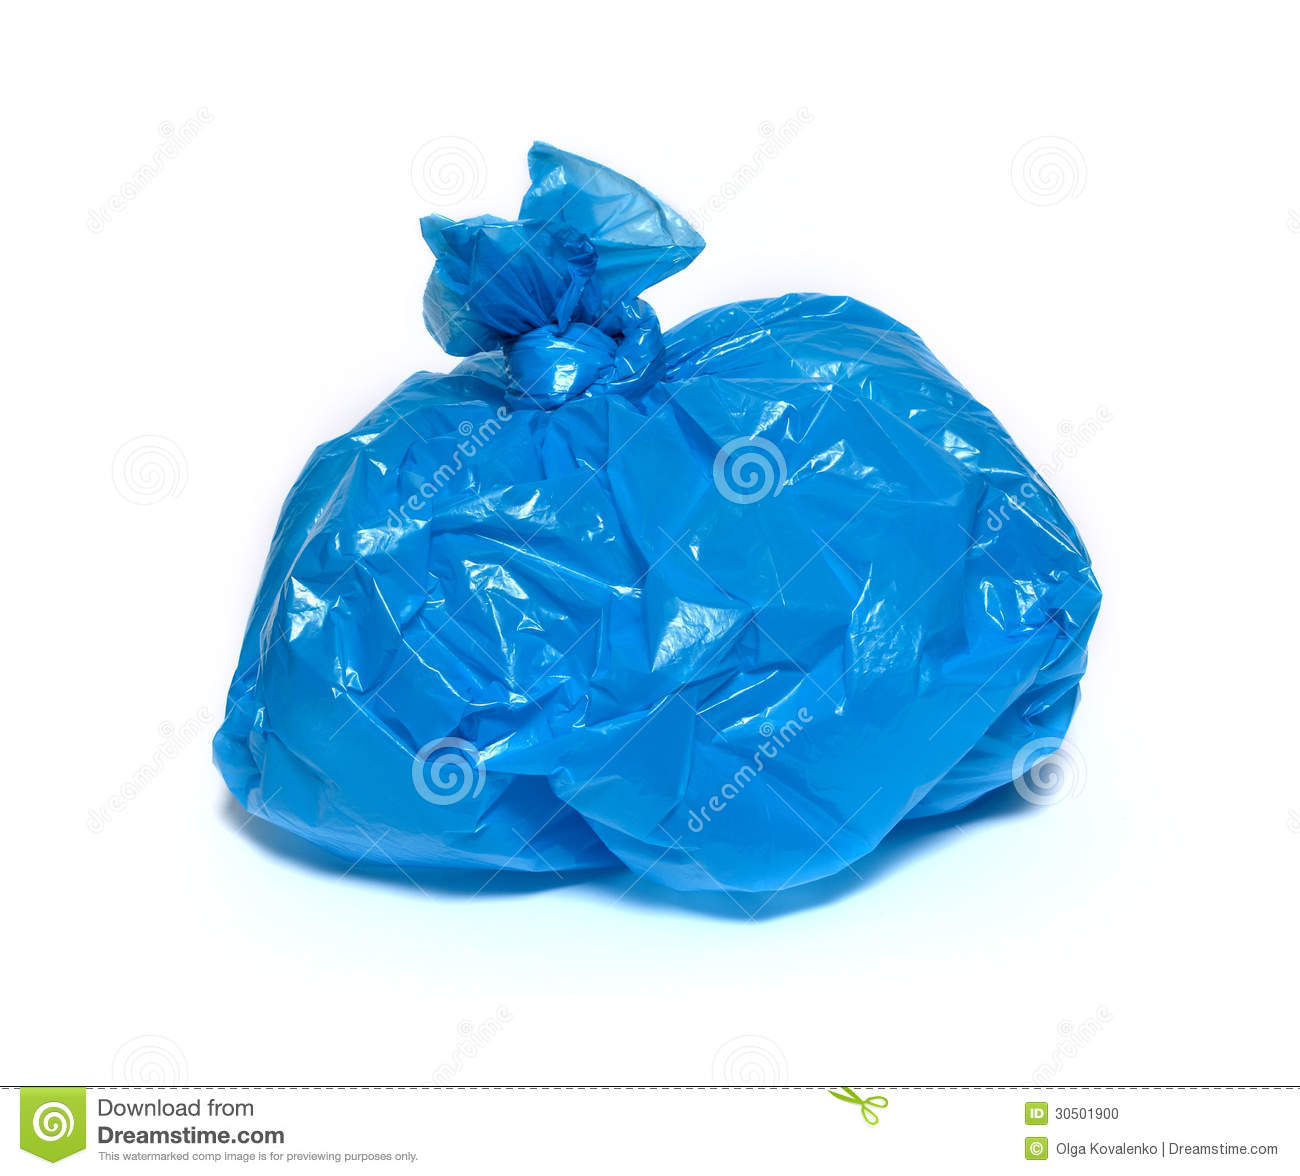 Blue garbage bag on a white background.